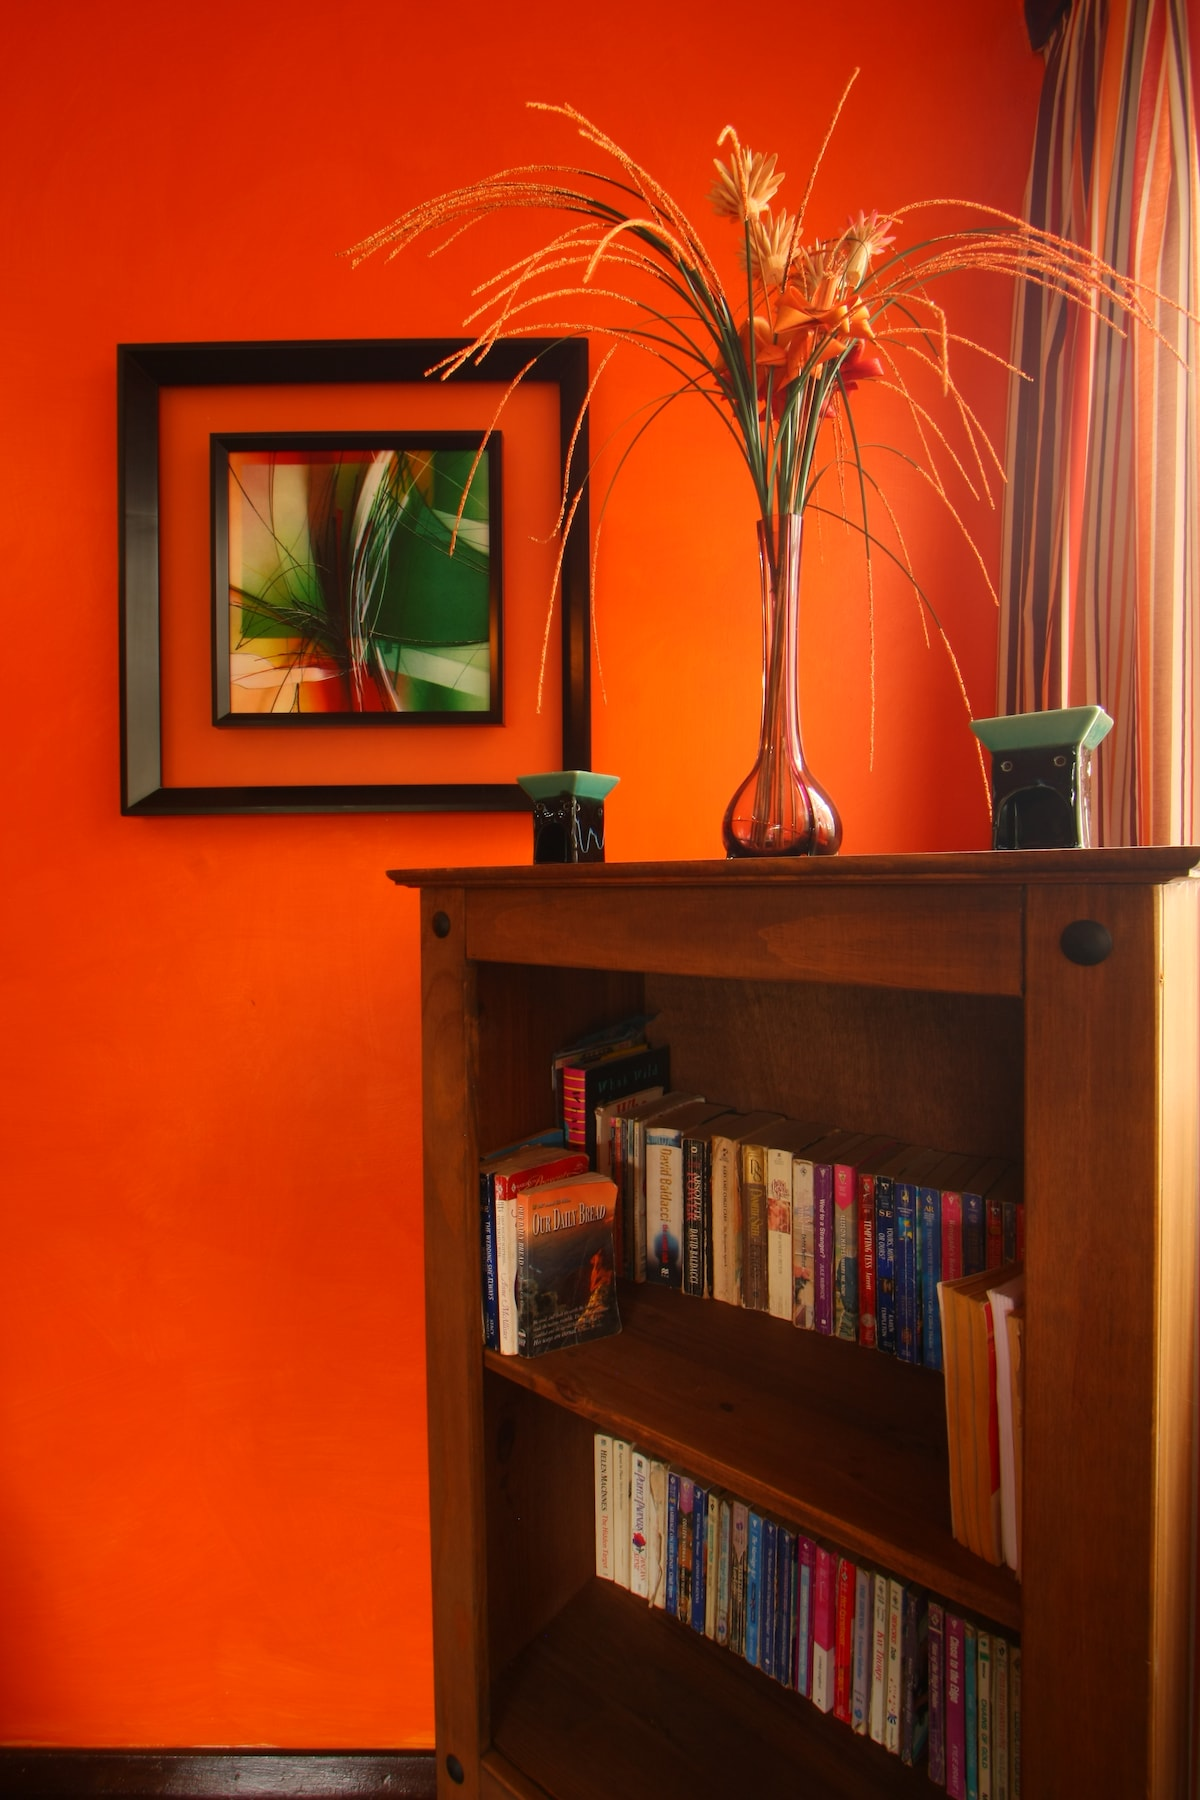 You may borrow a book from our small library and leave a book for other guests